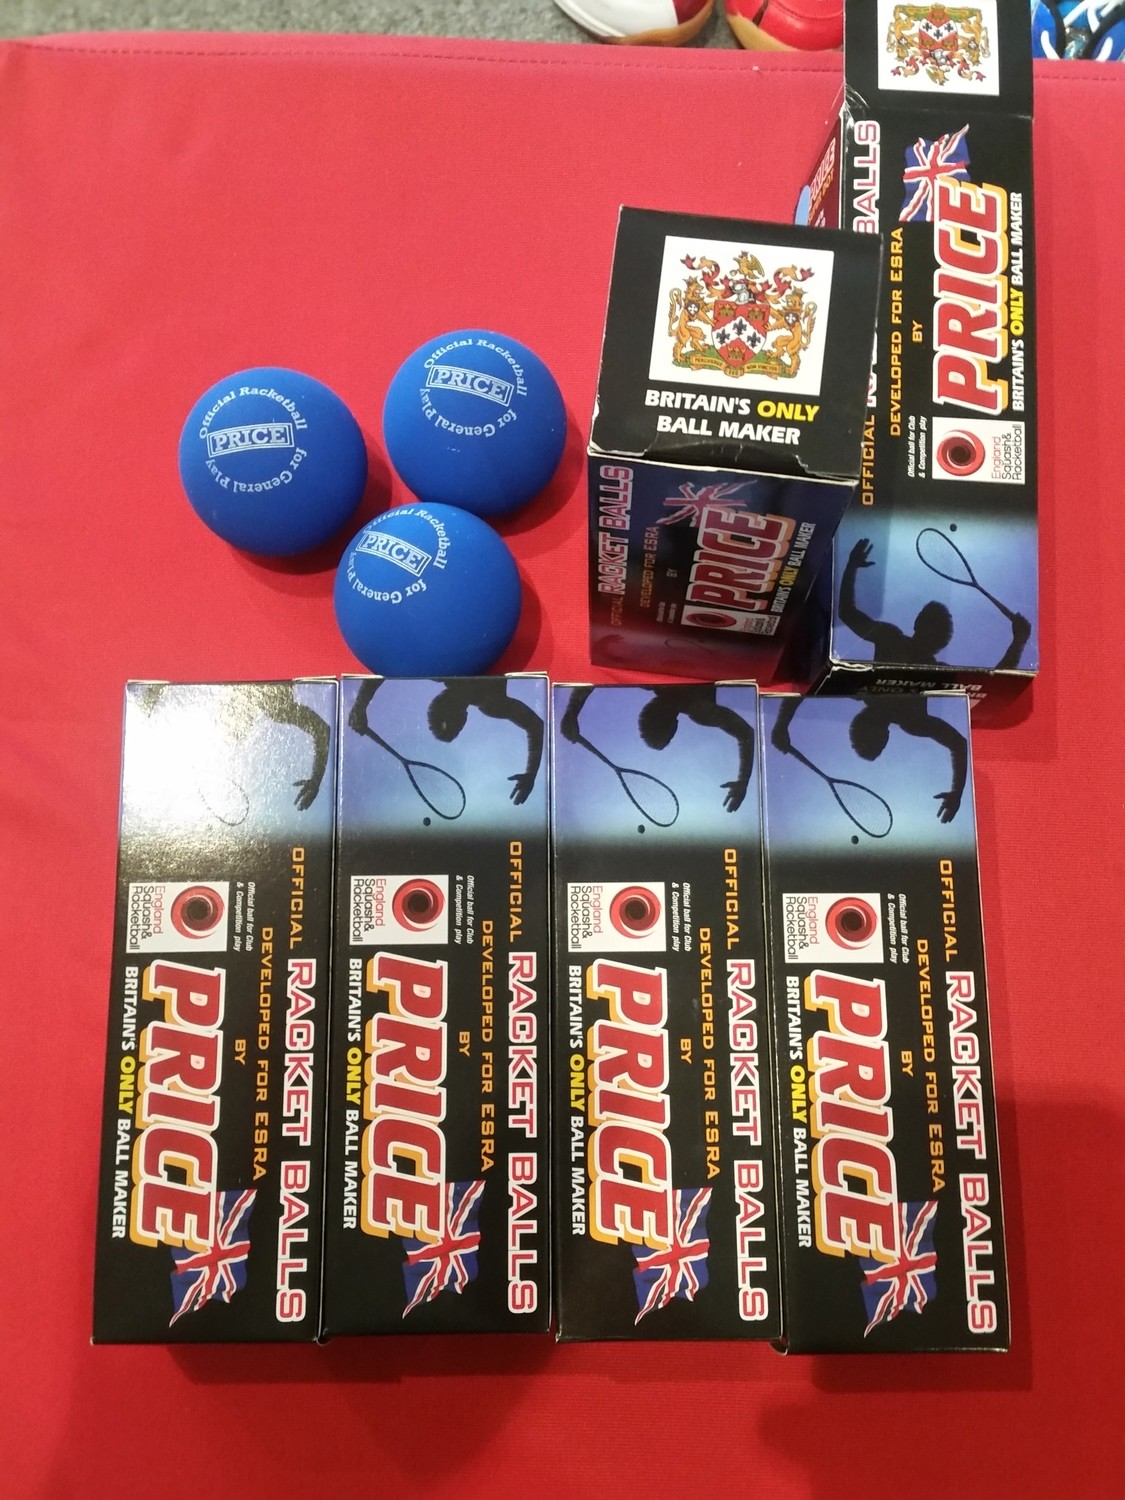 Price Racket Balls (3 Pack)